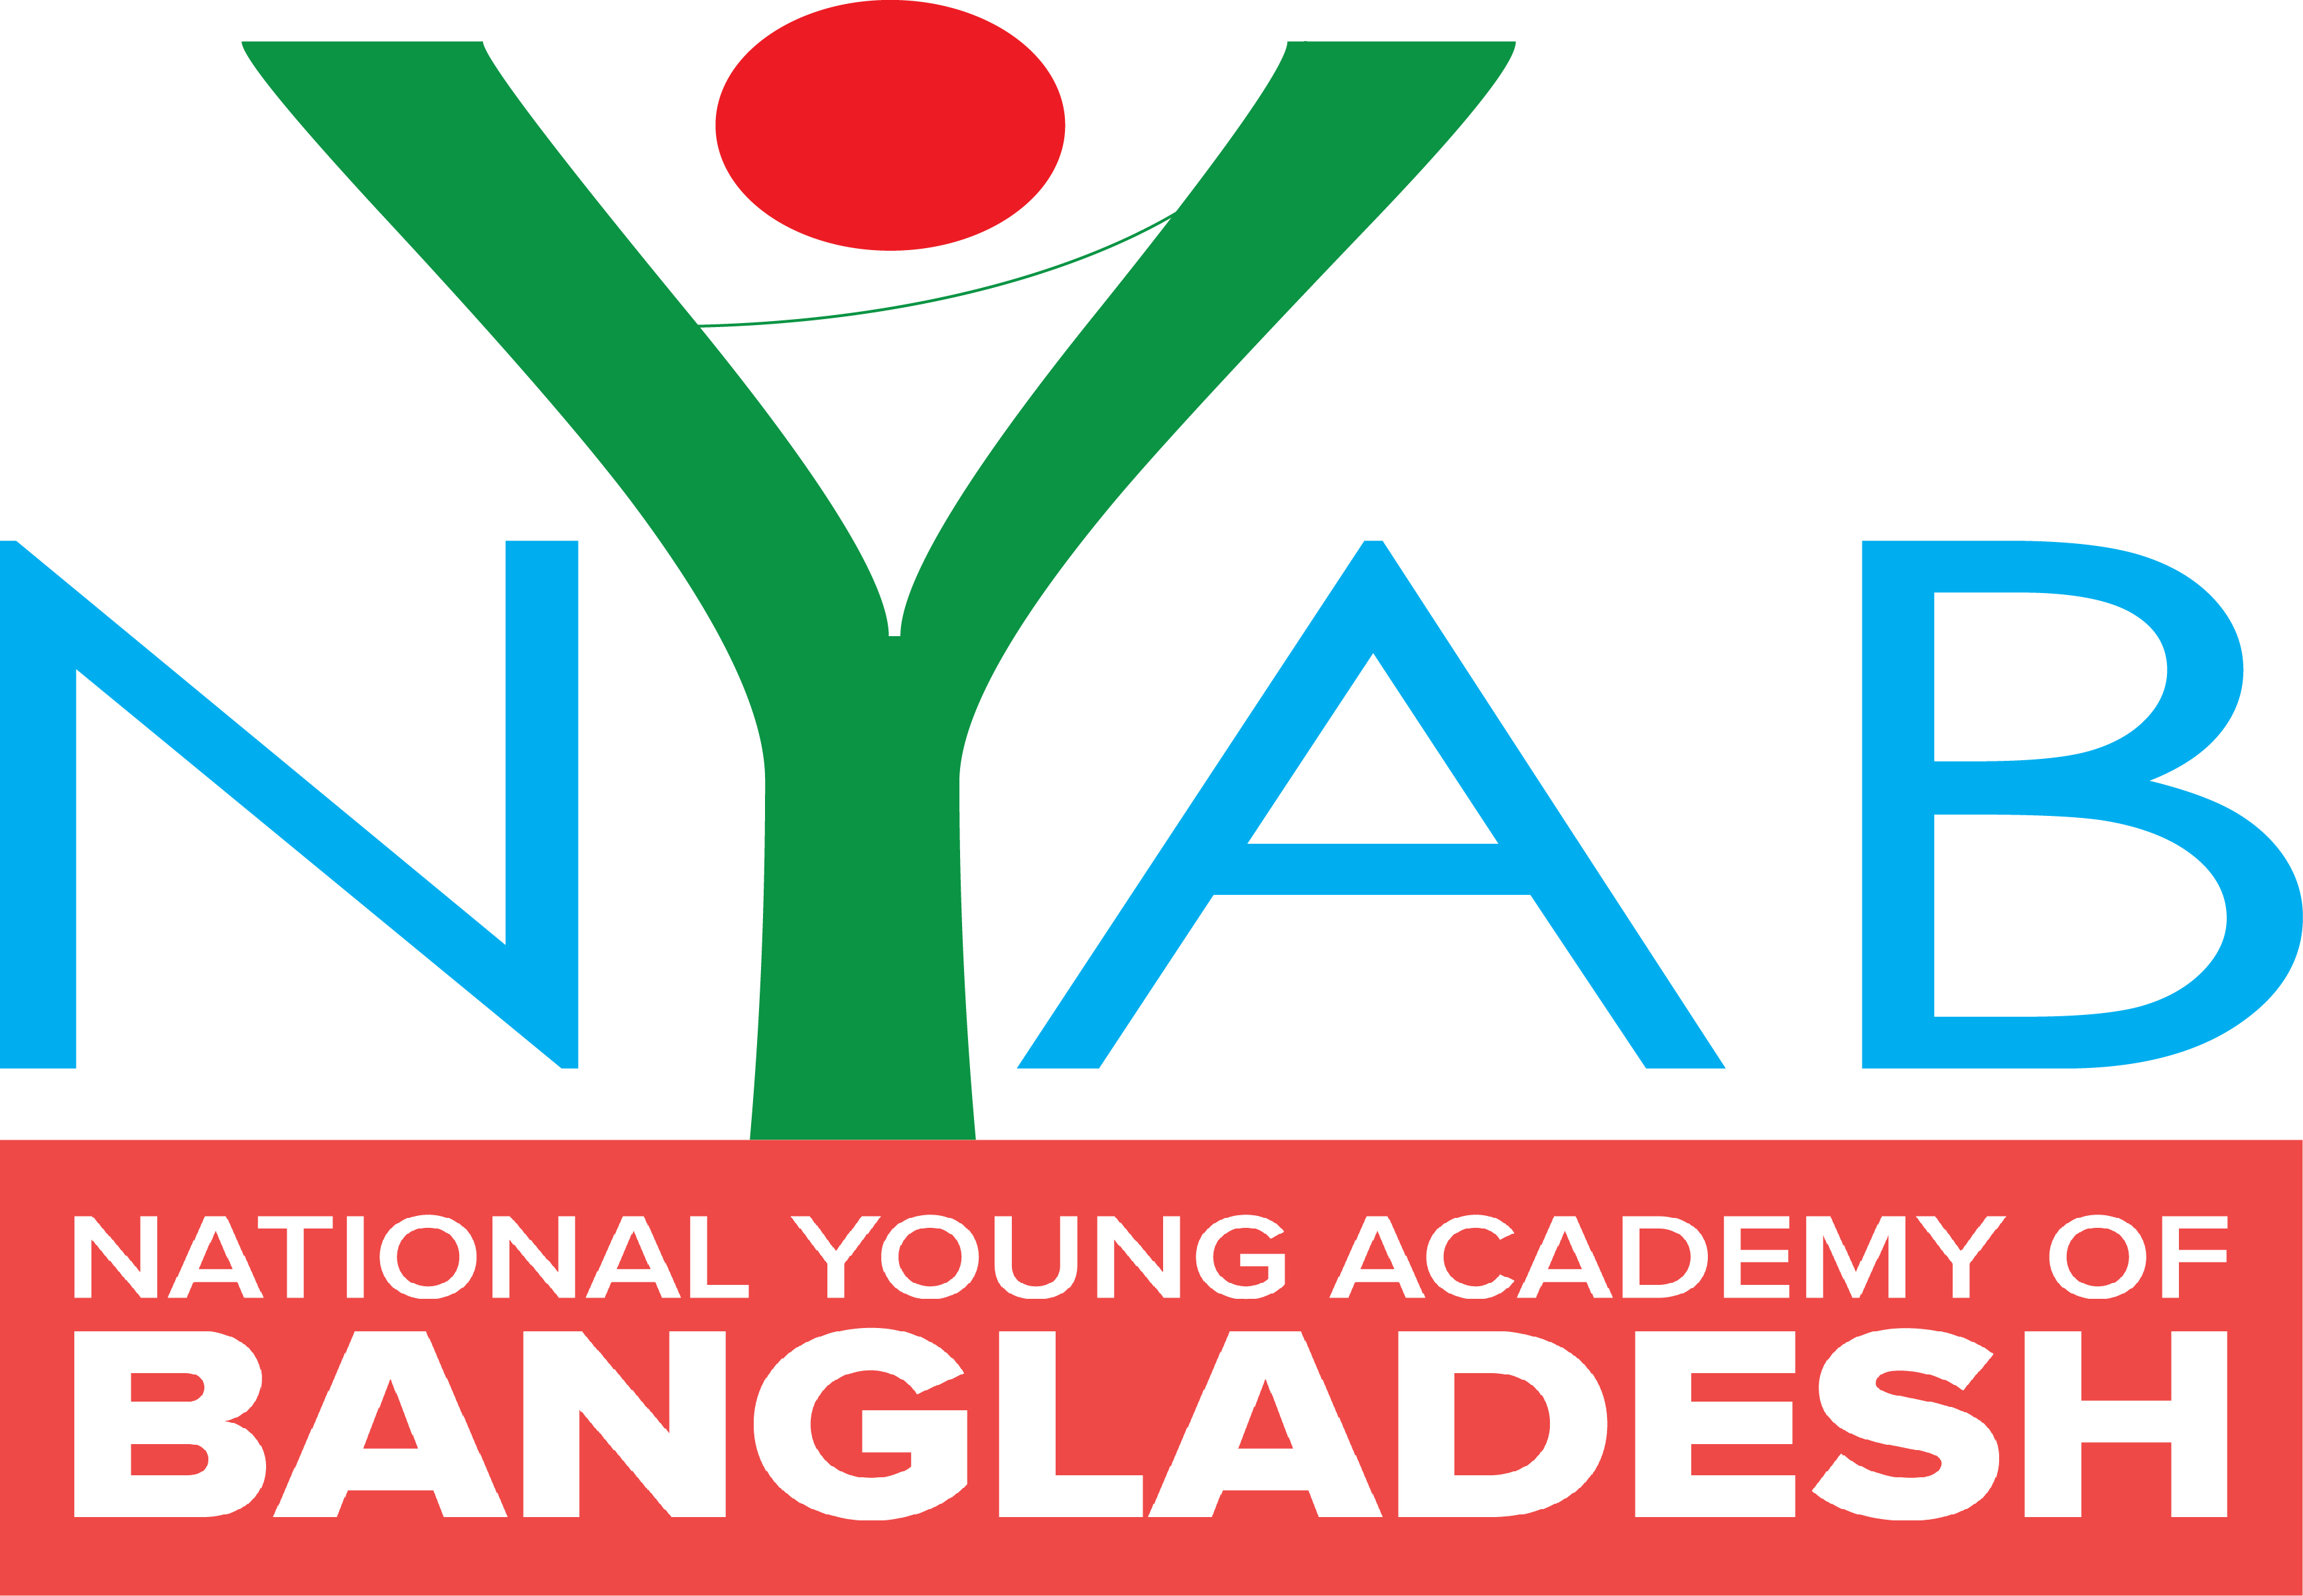 National Young Academy of Bangladesh